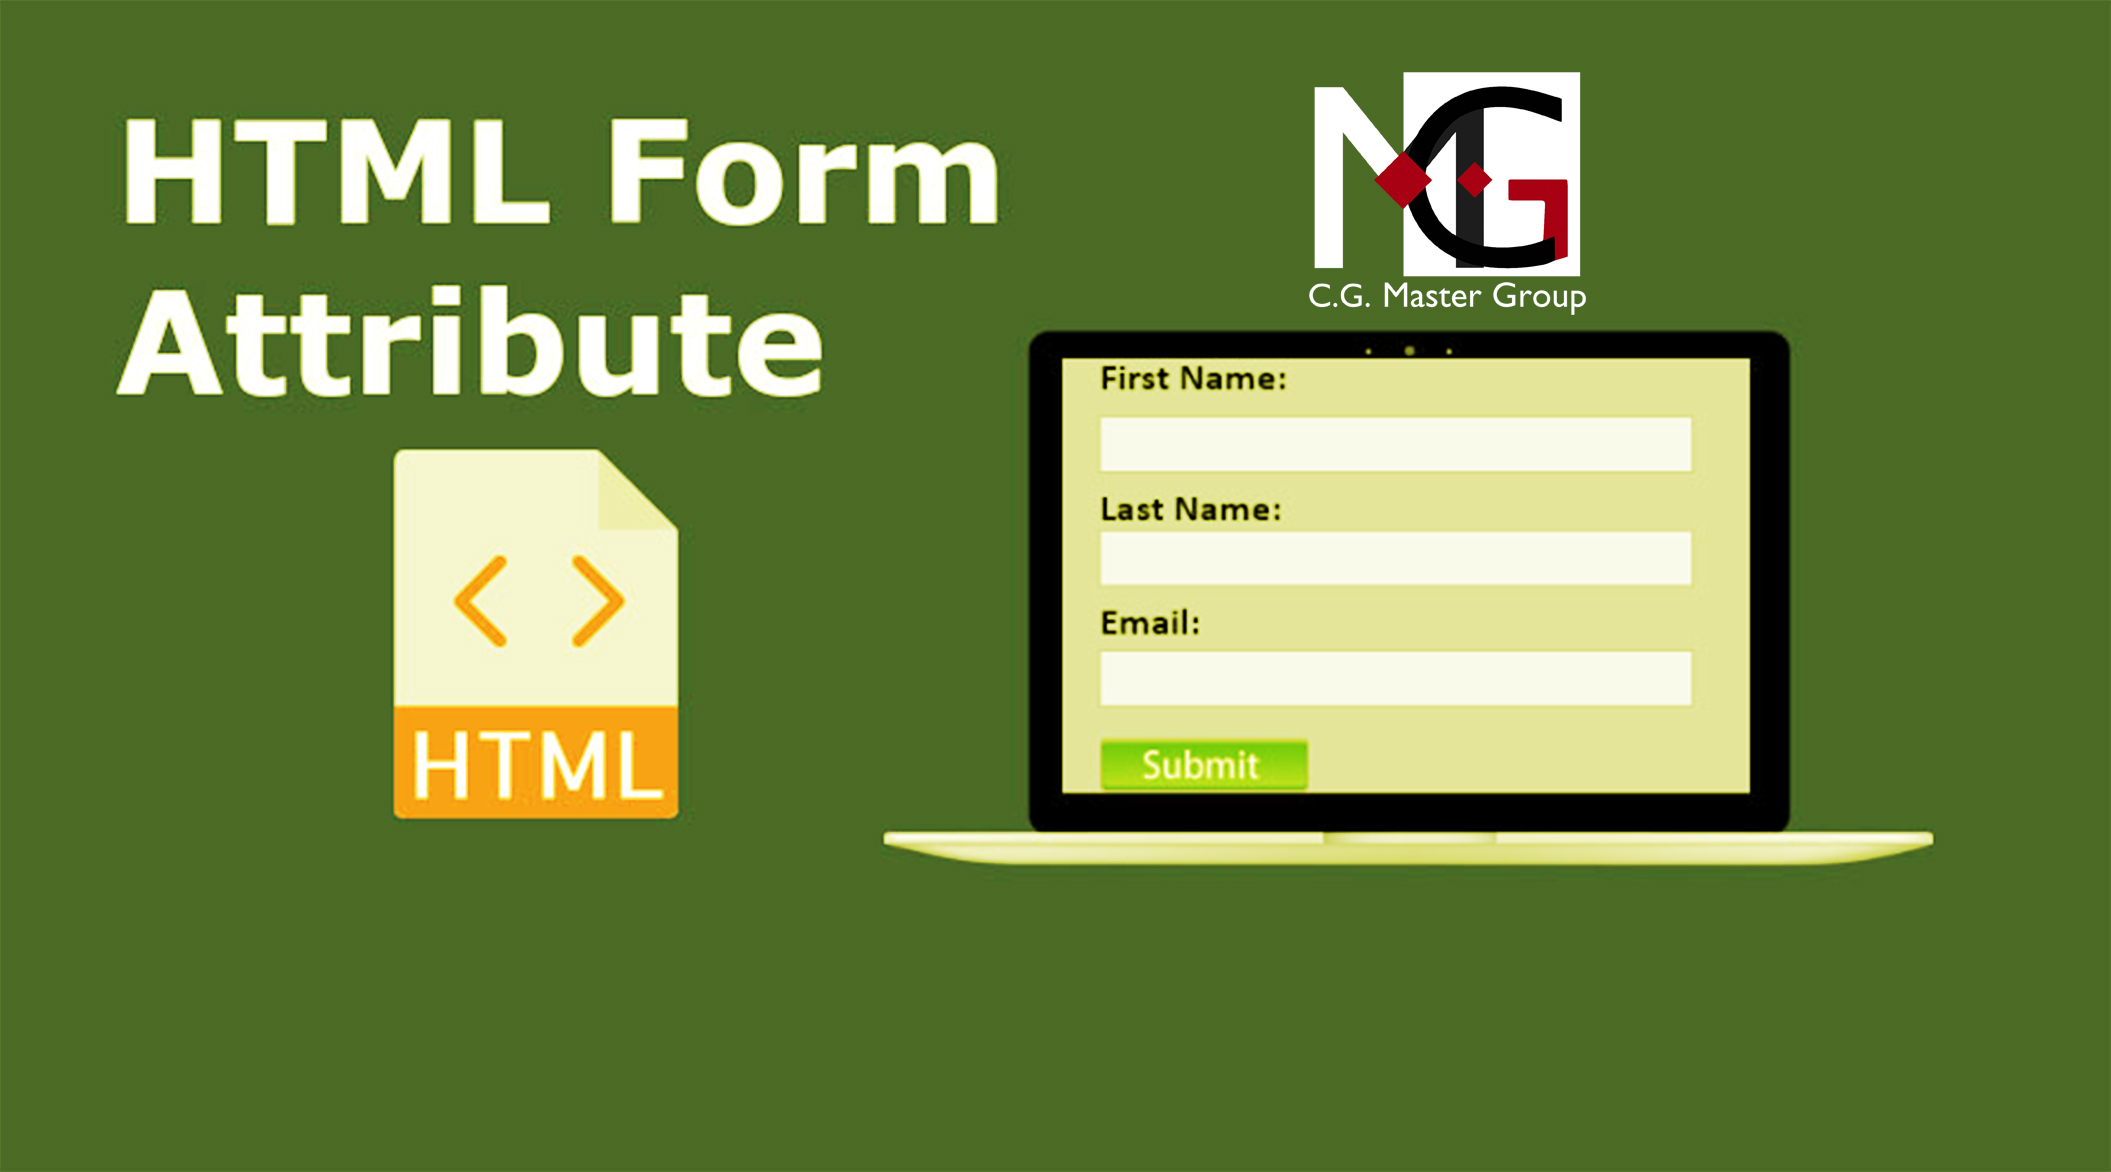 HTML Forms attributes